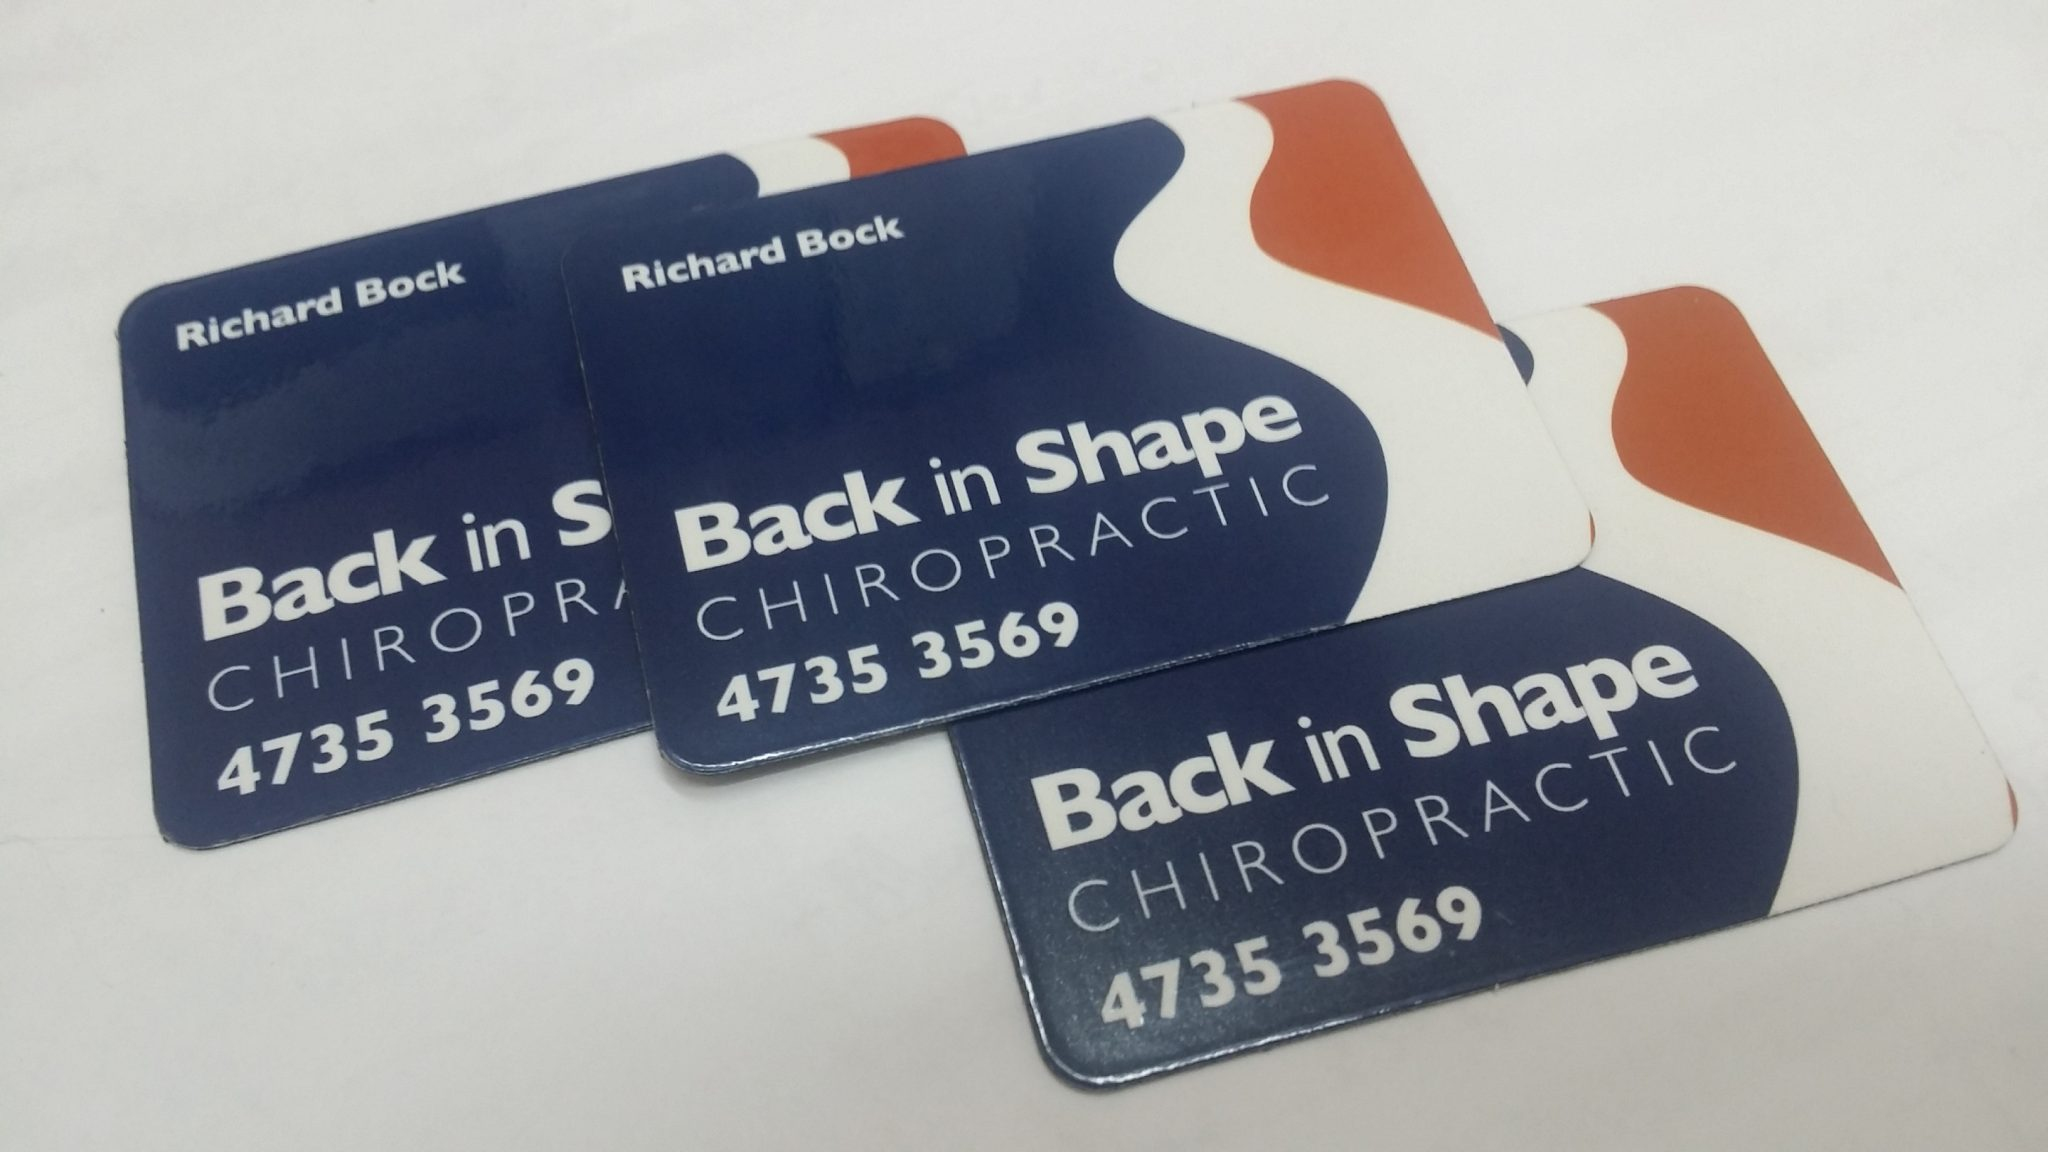 Back in Shape Chiropractic